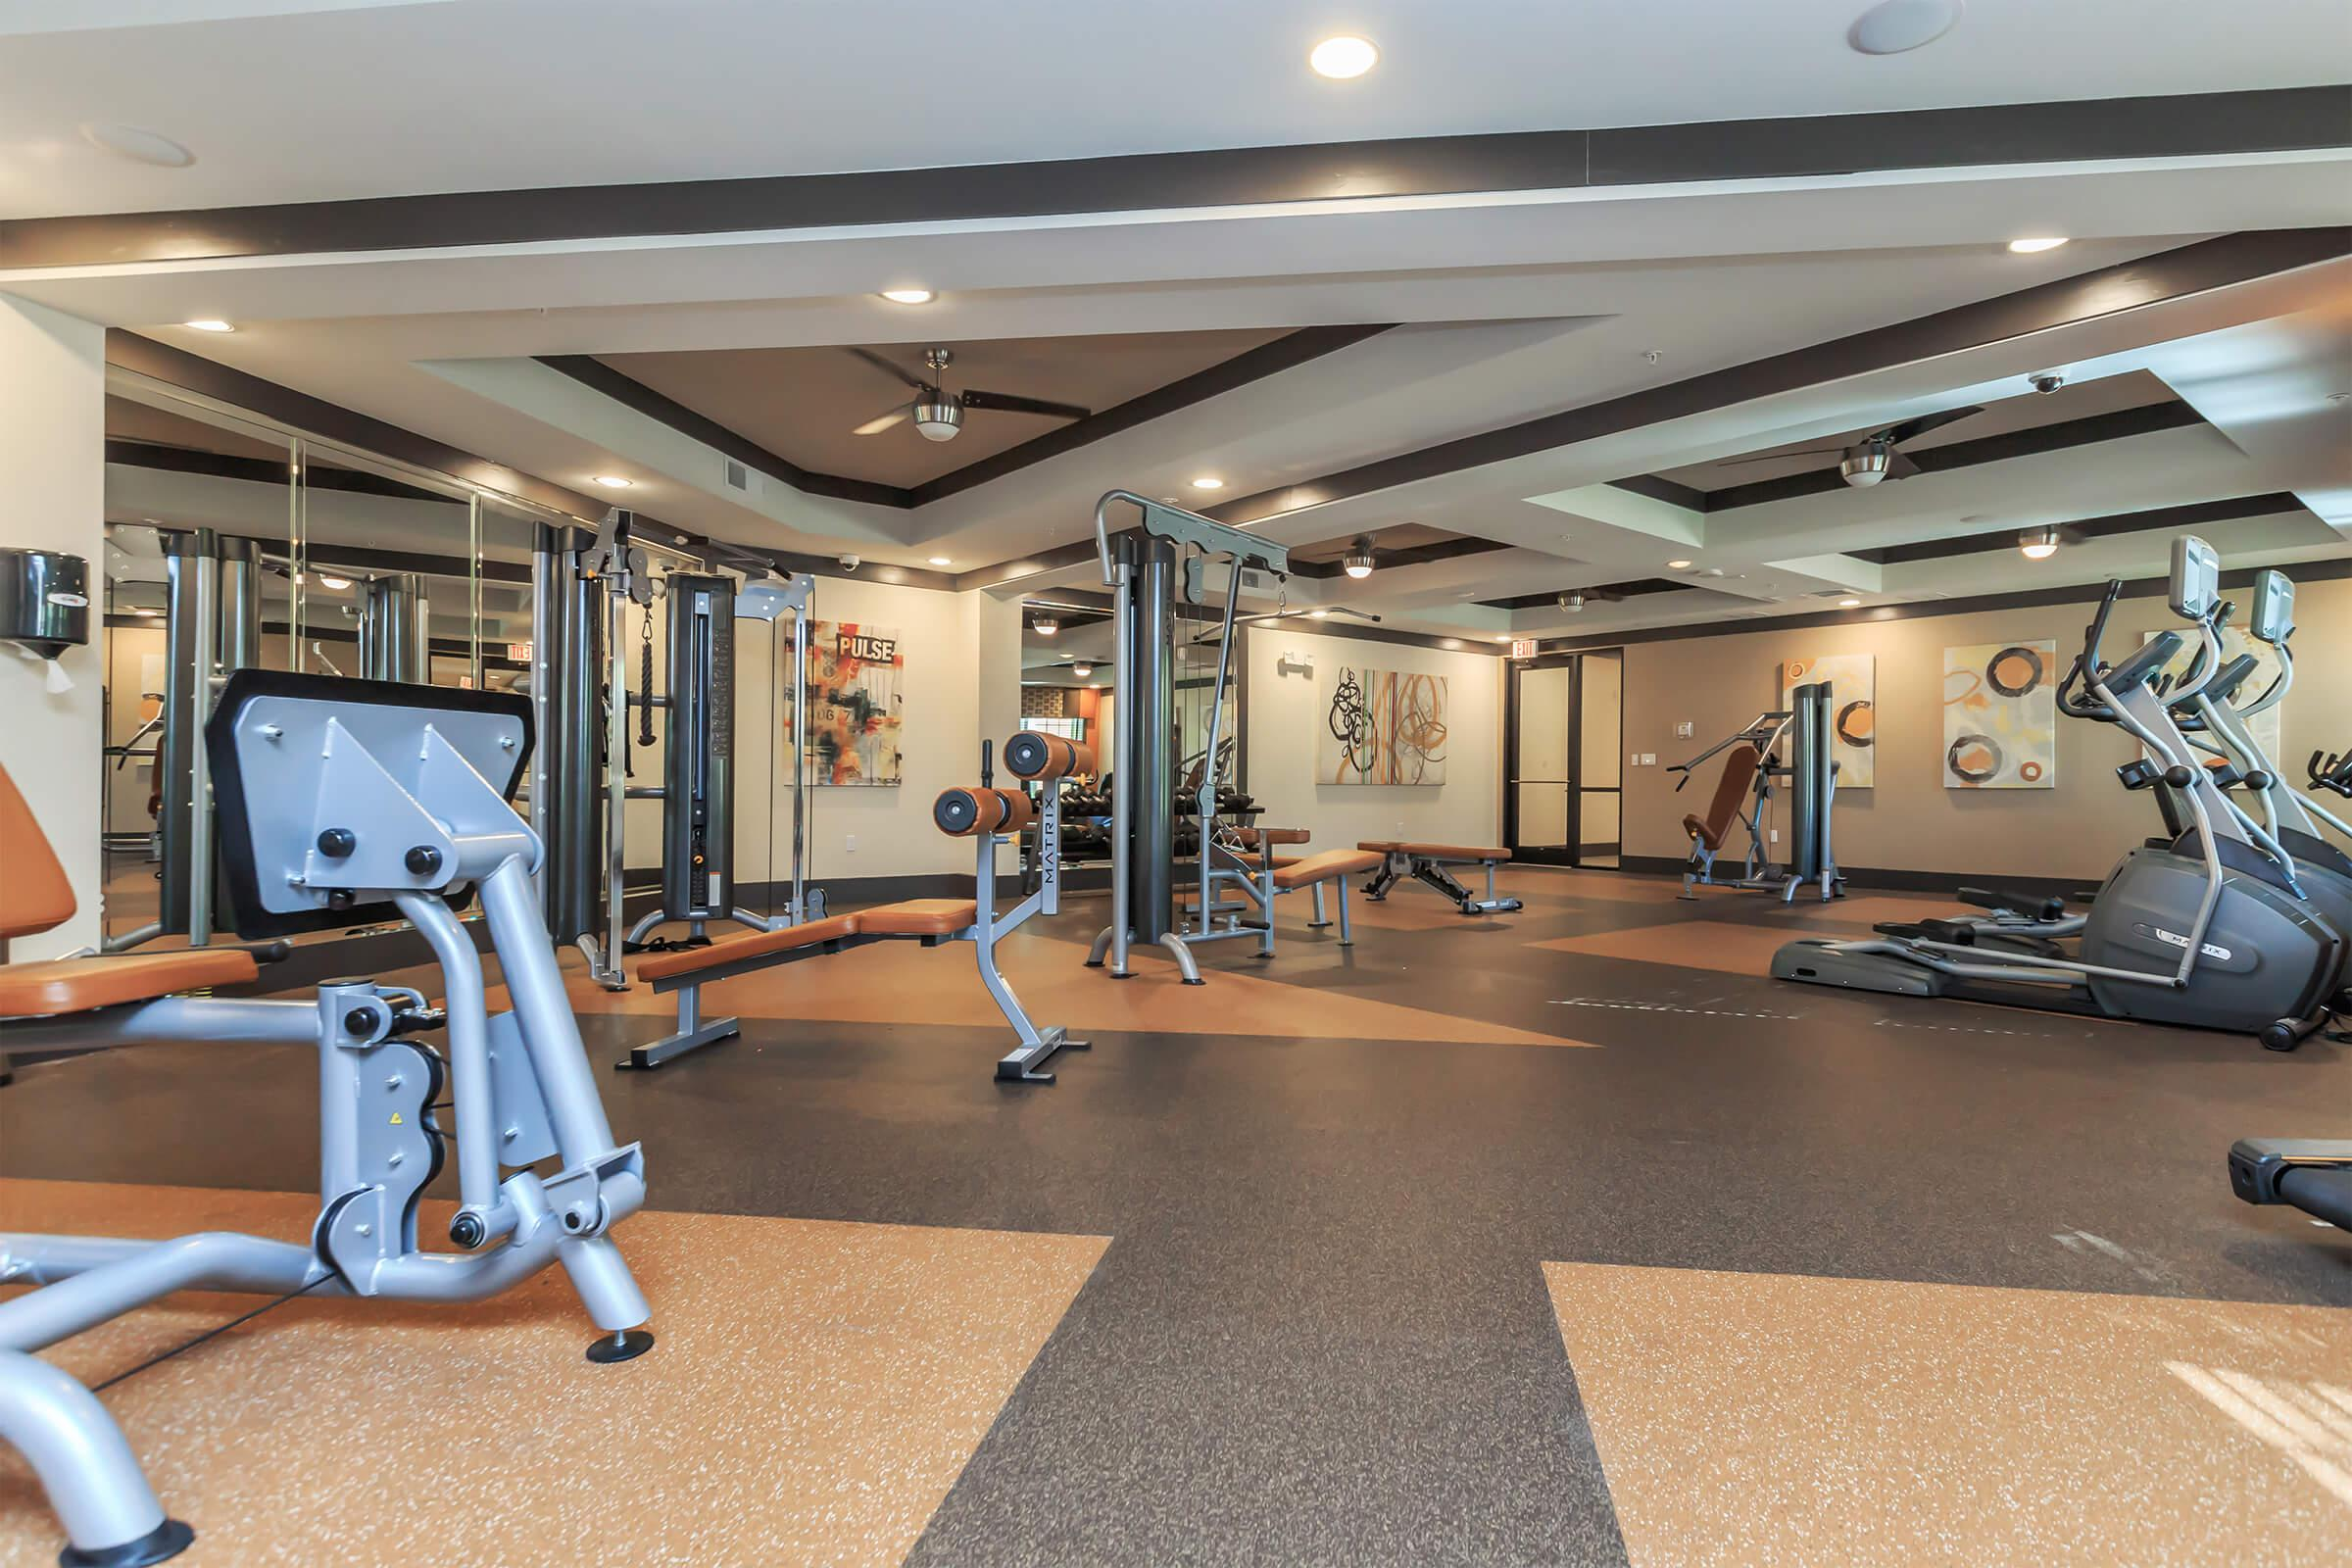 Fitness Center at RiZE at Winter Springs Apartments in Winter Springs, FL